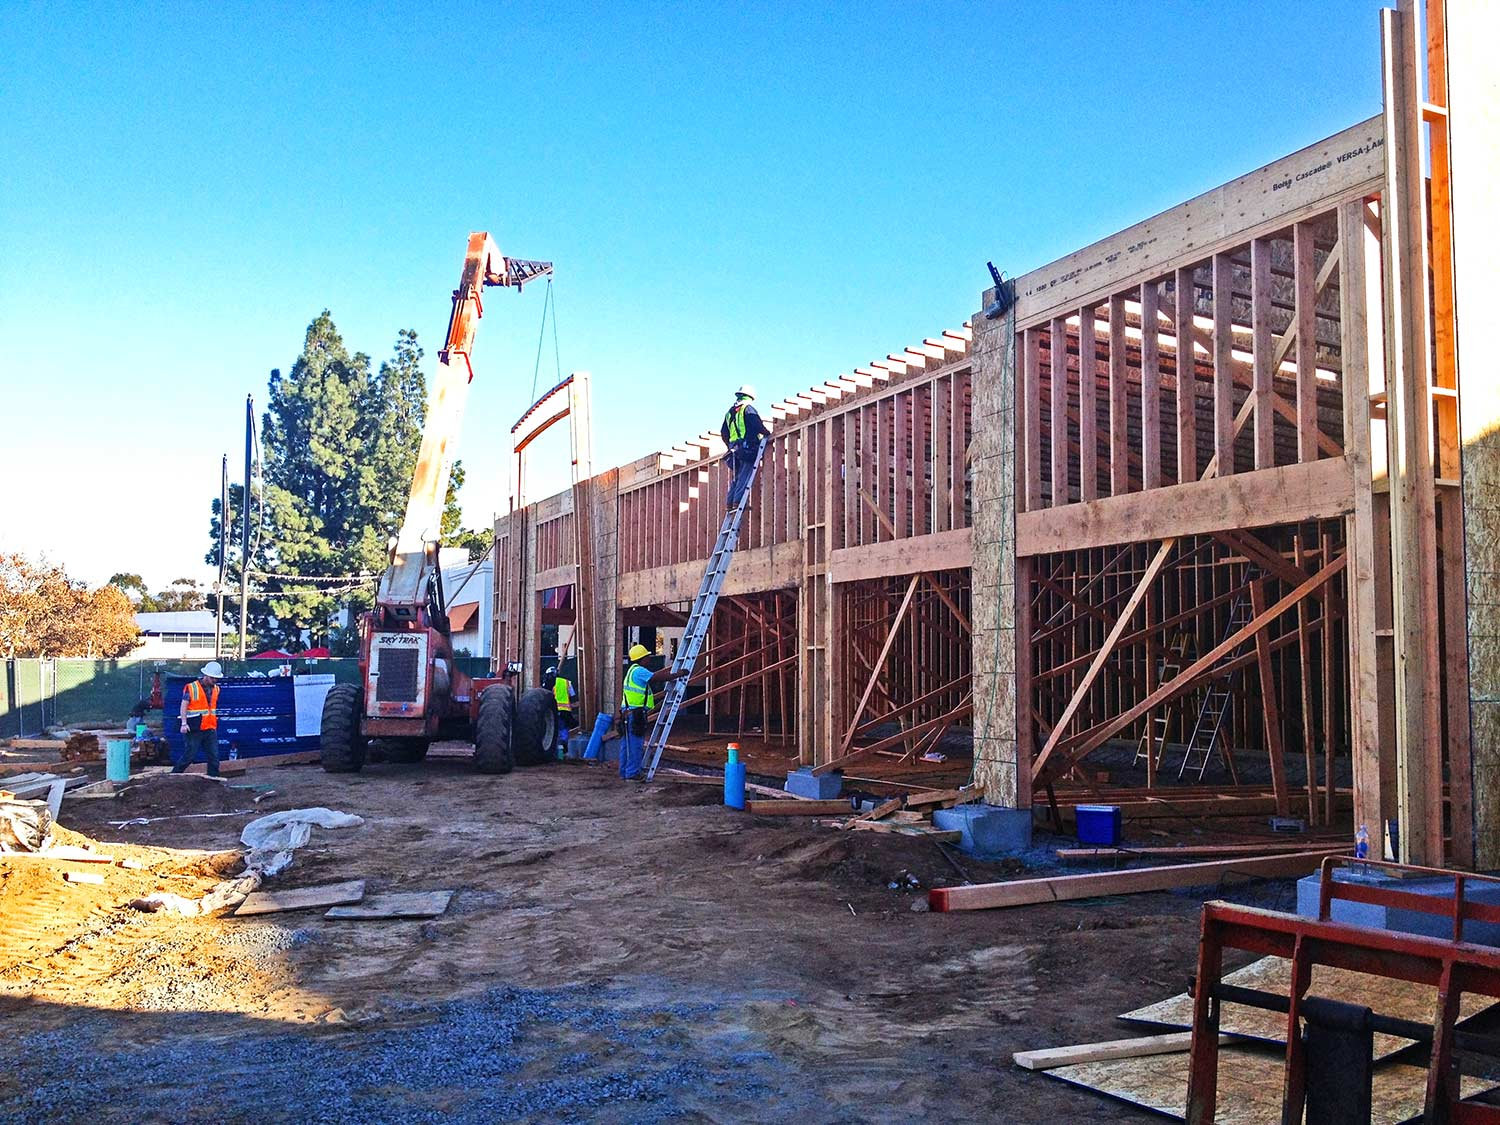 Construction of Five Guys Burgers and Fries